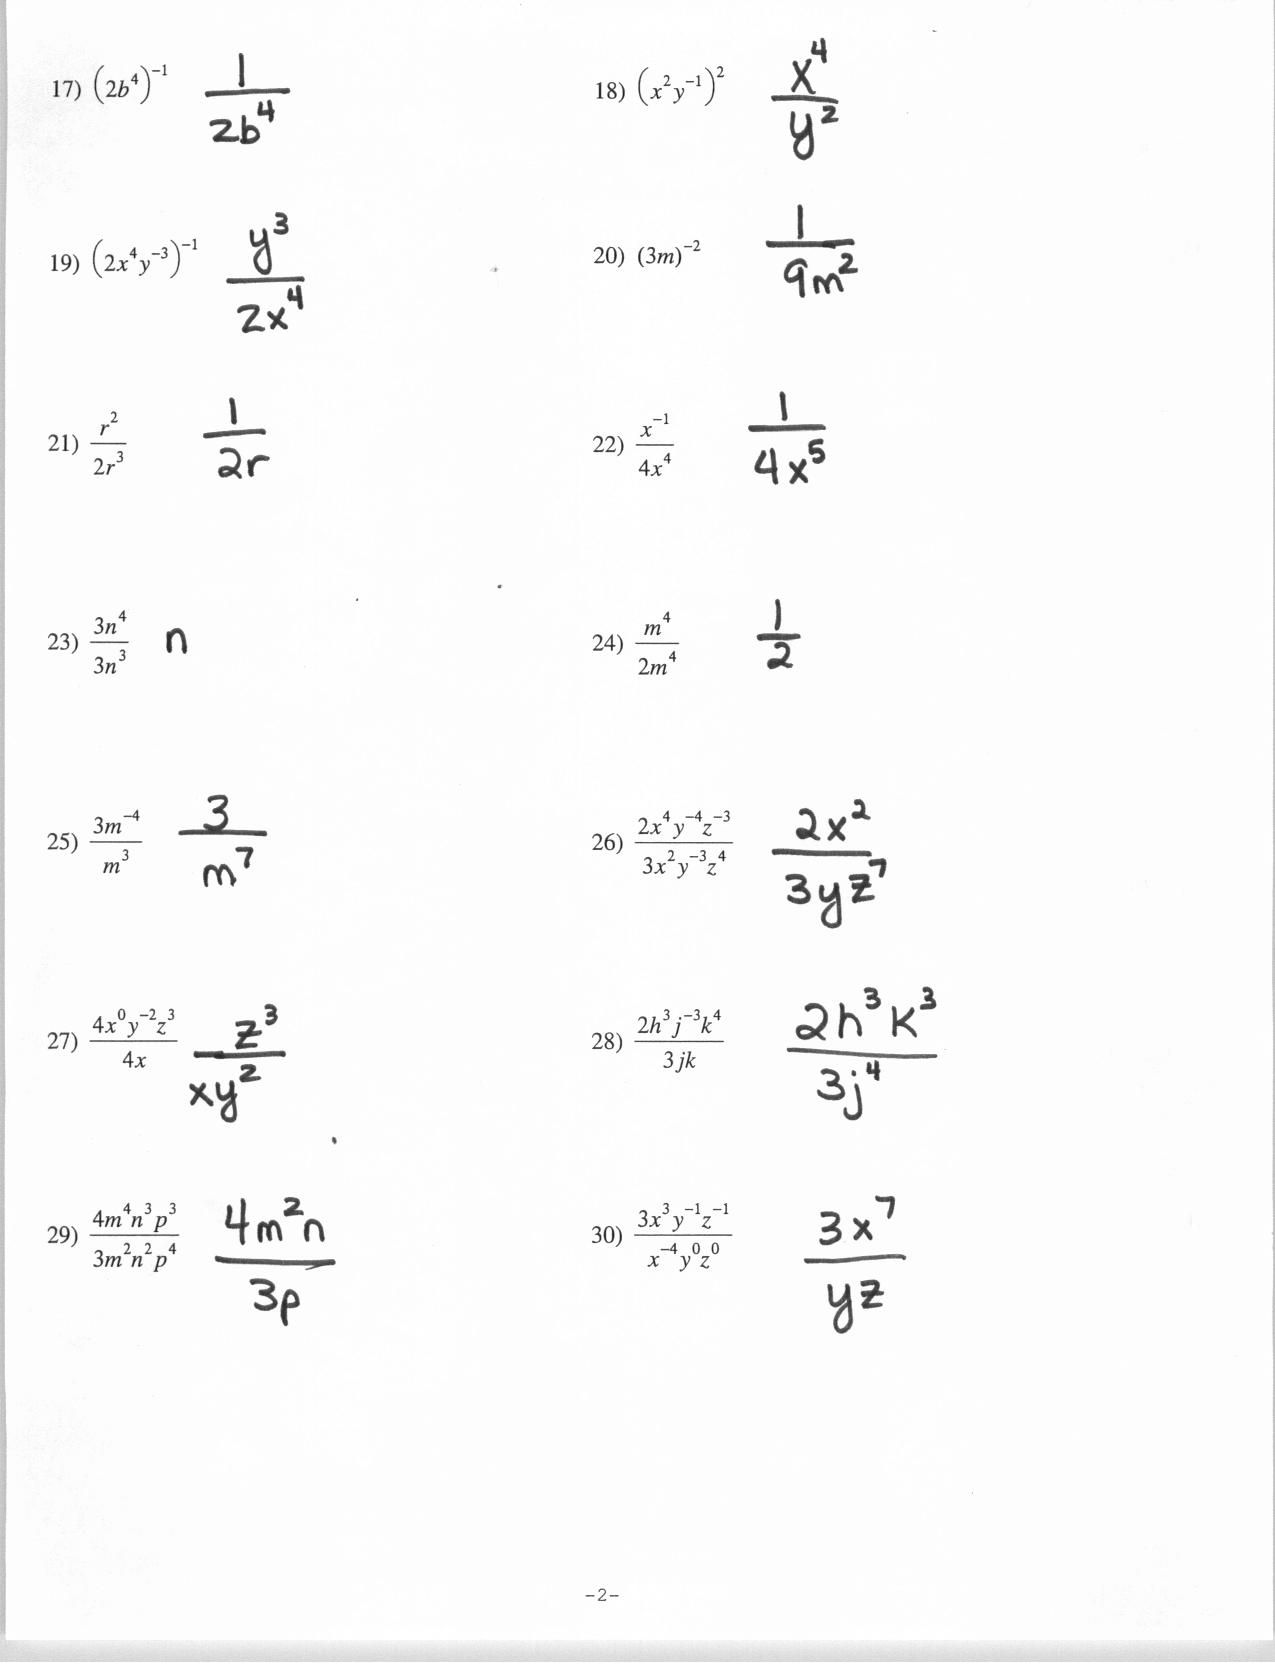 Dividing Decimals Worksheet Kuta